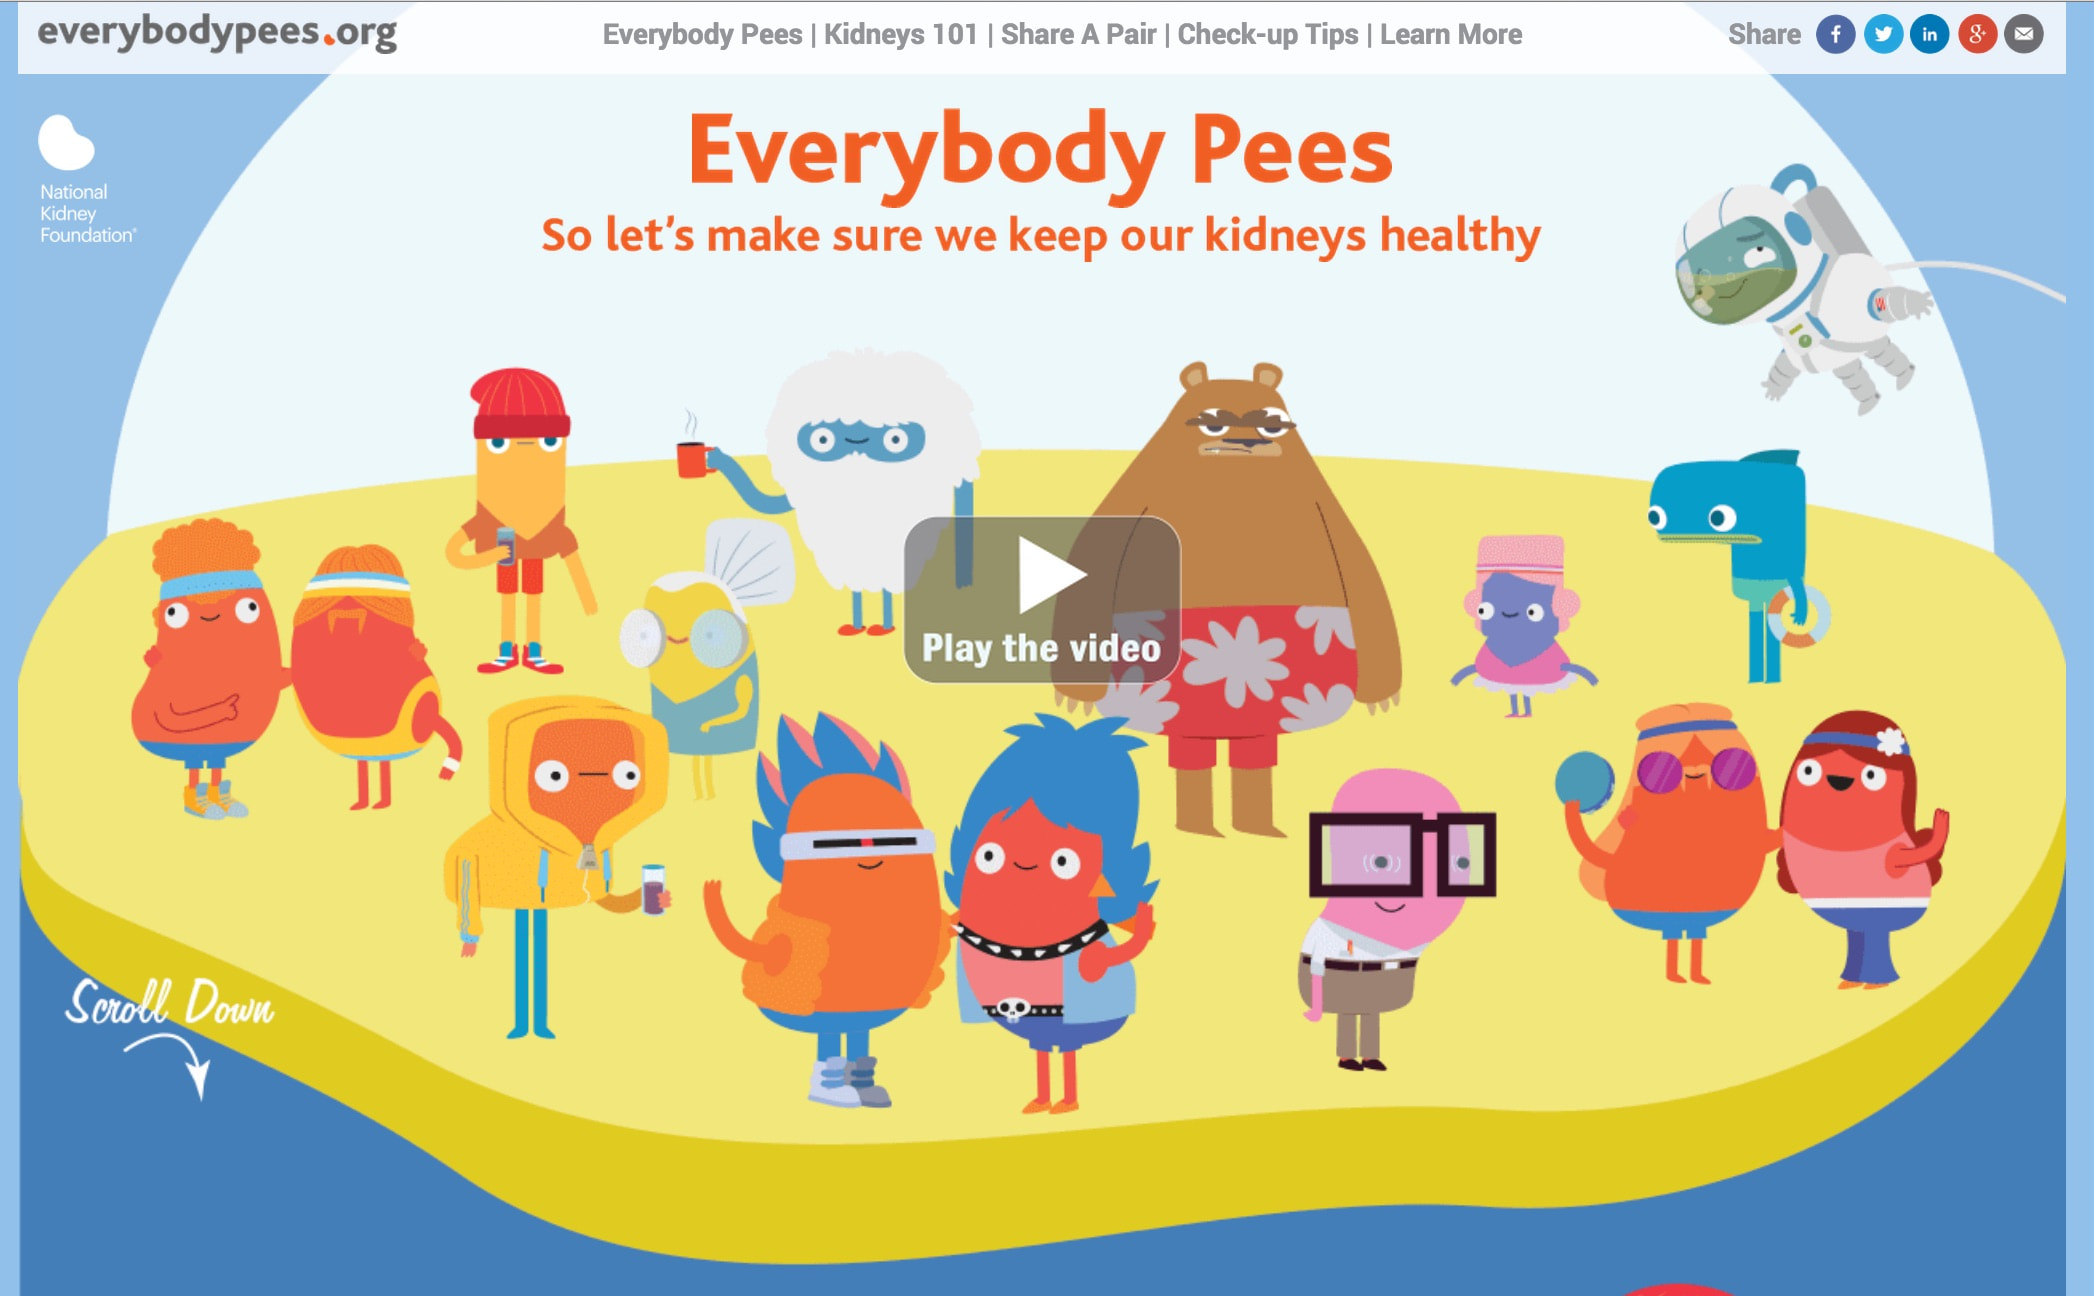 NKF_-_Everybody_Pees